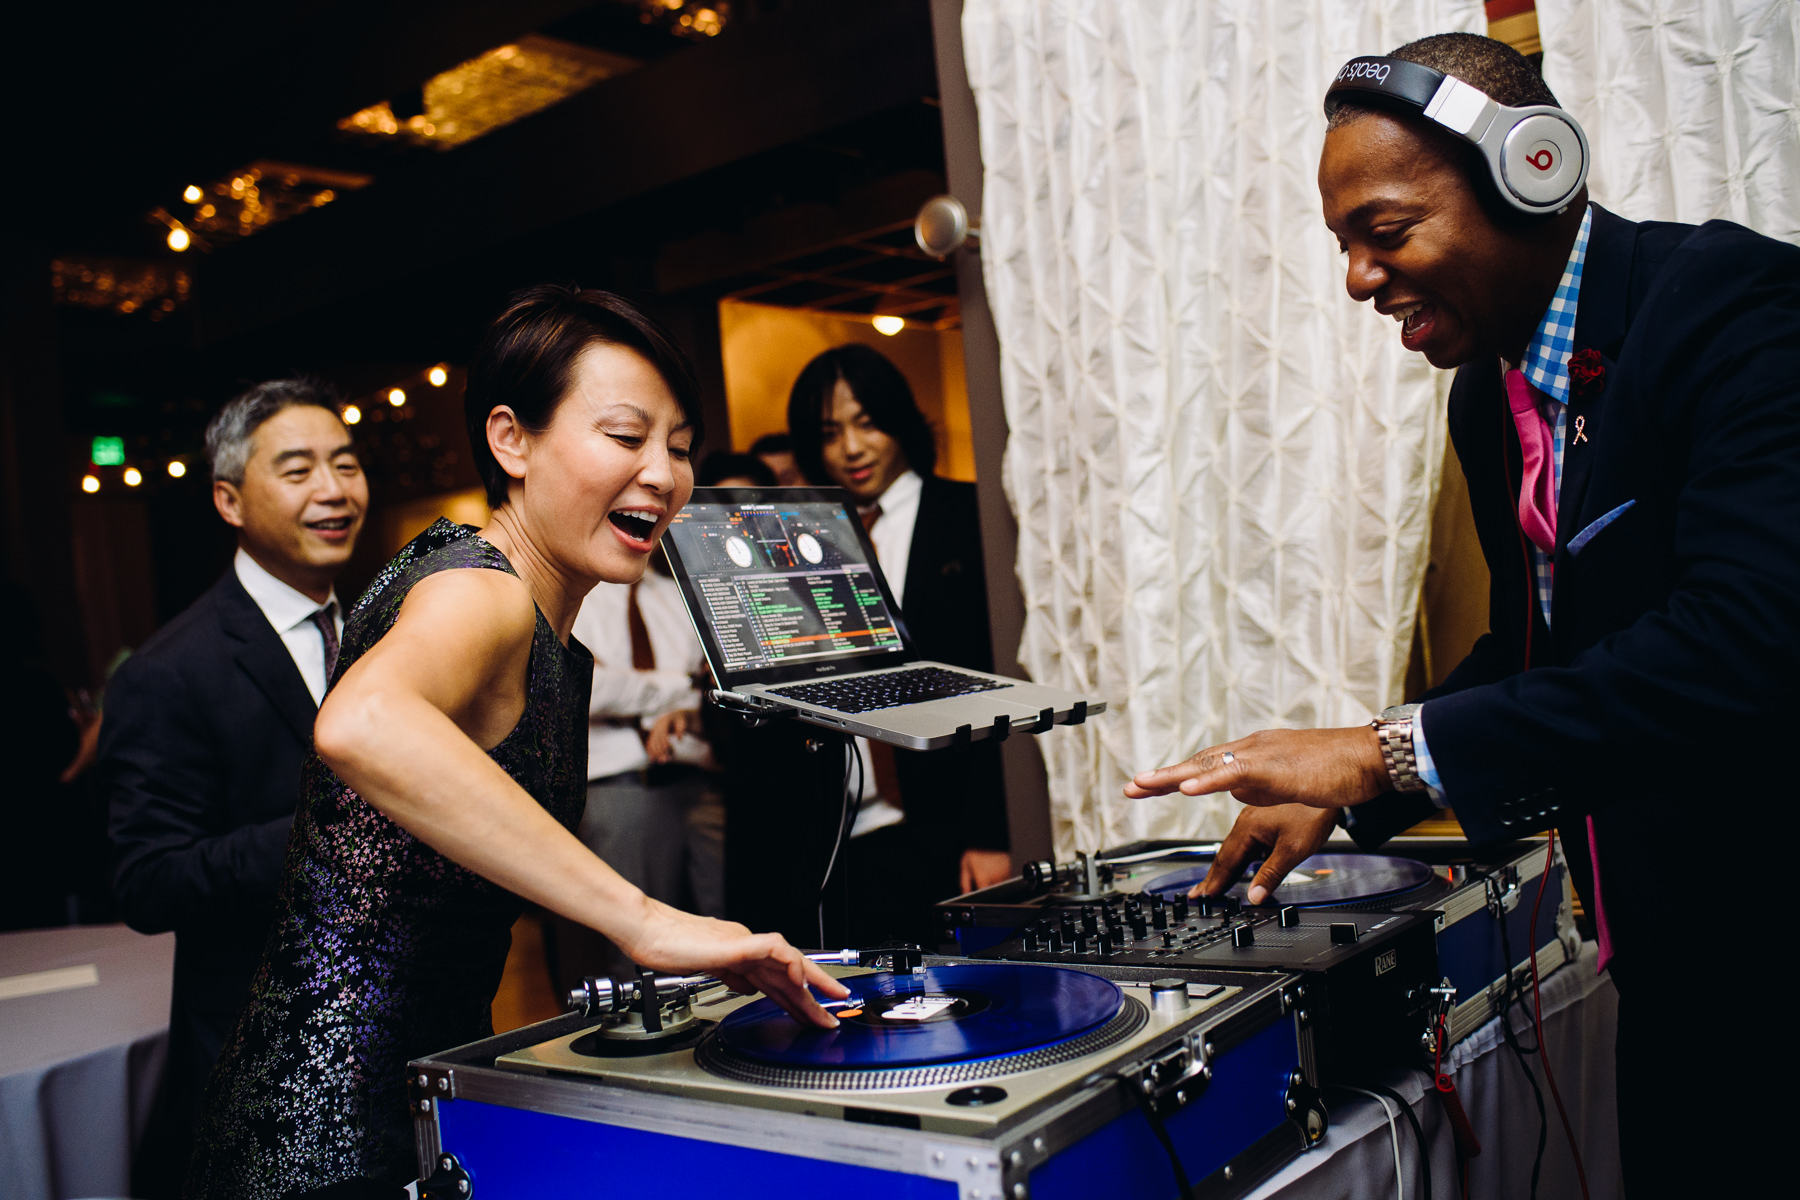 wedding guest and DJ partying